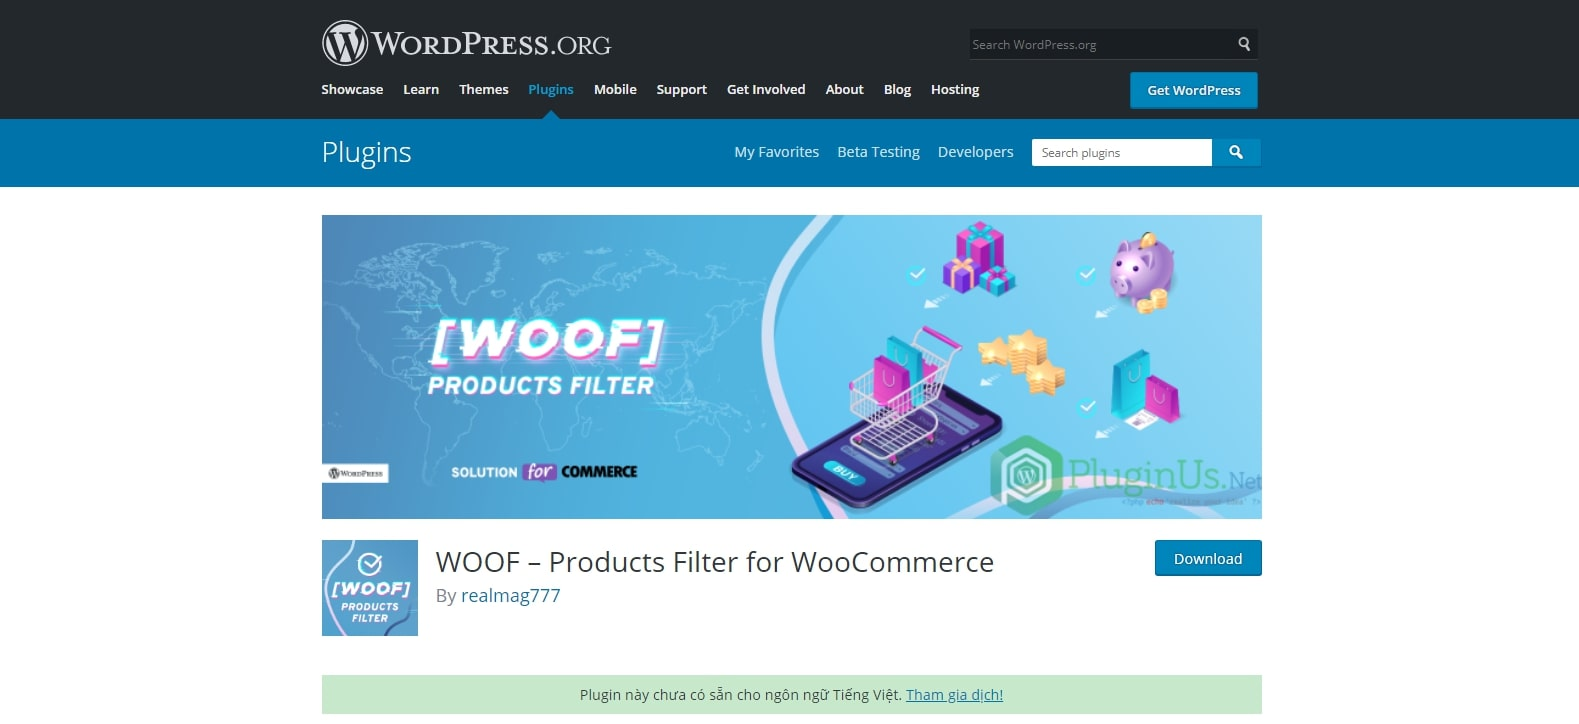 Products Filter for WooCommerce (WOOF)